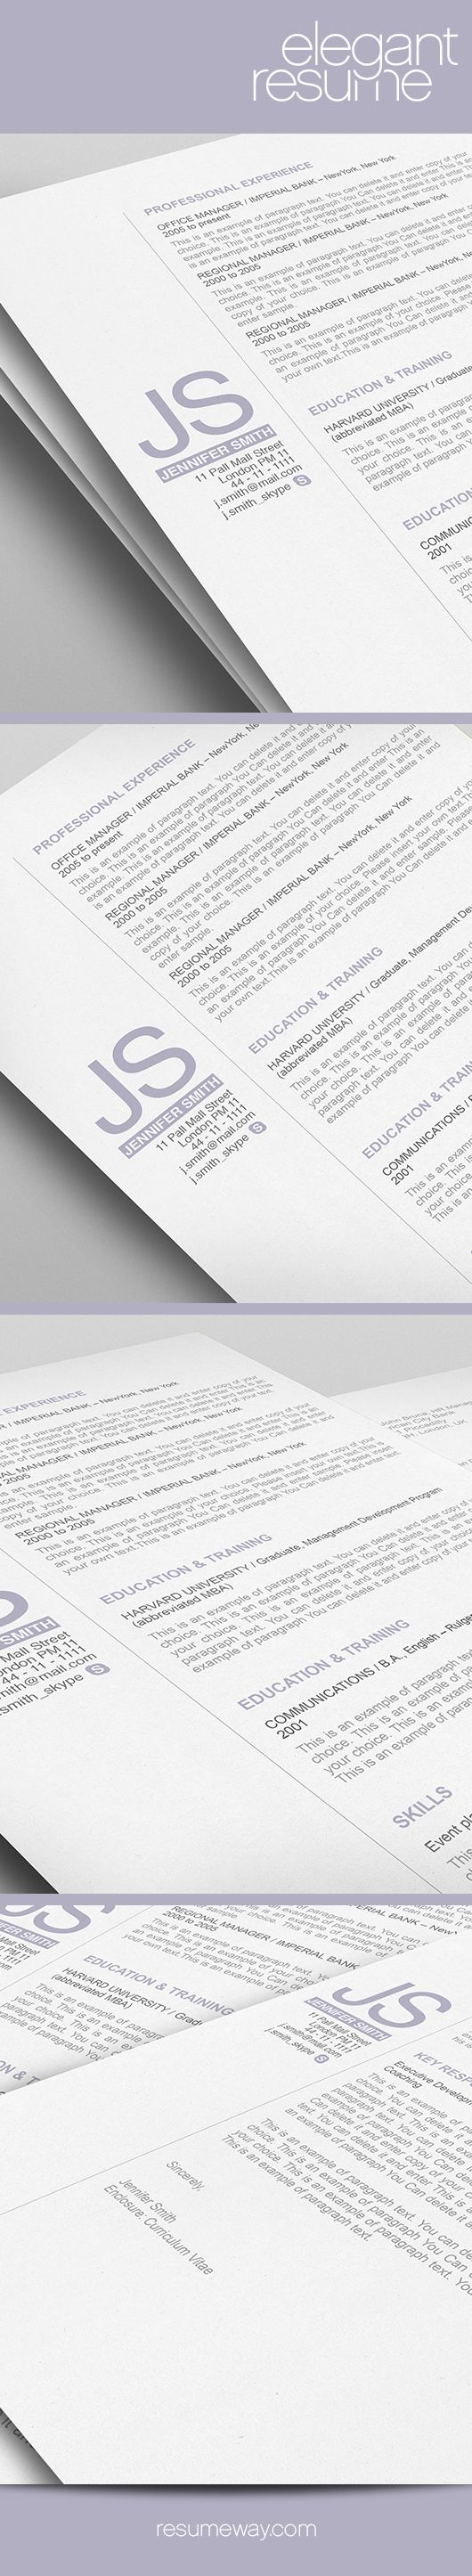 elegant resume template 110520 premium line of resume cover letter templates easy